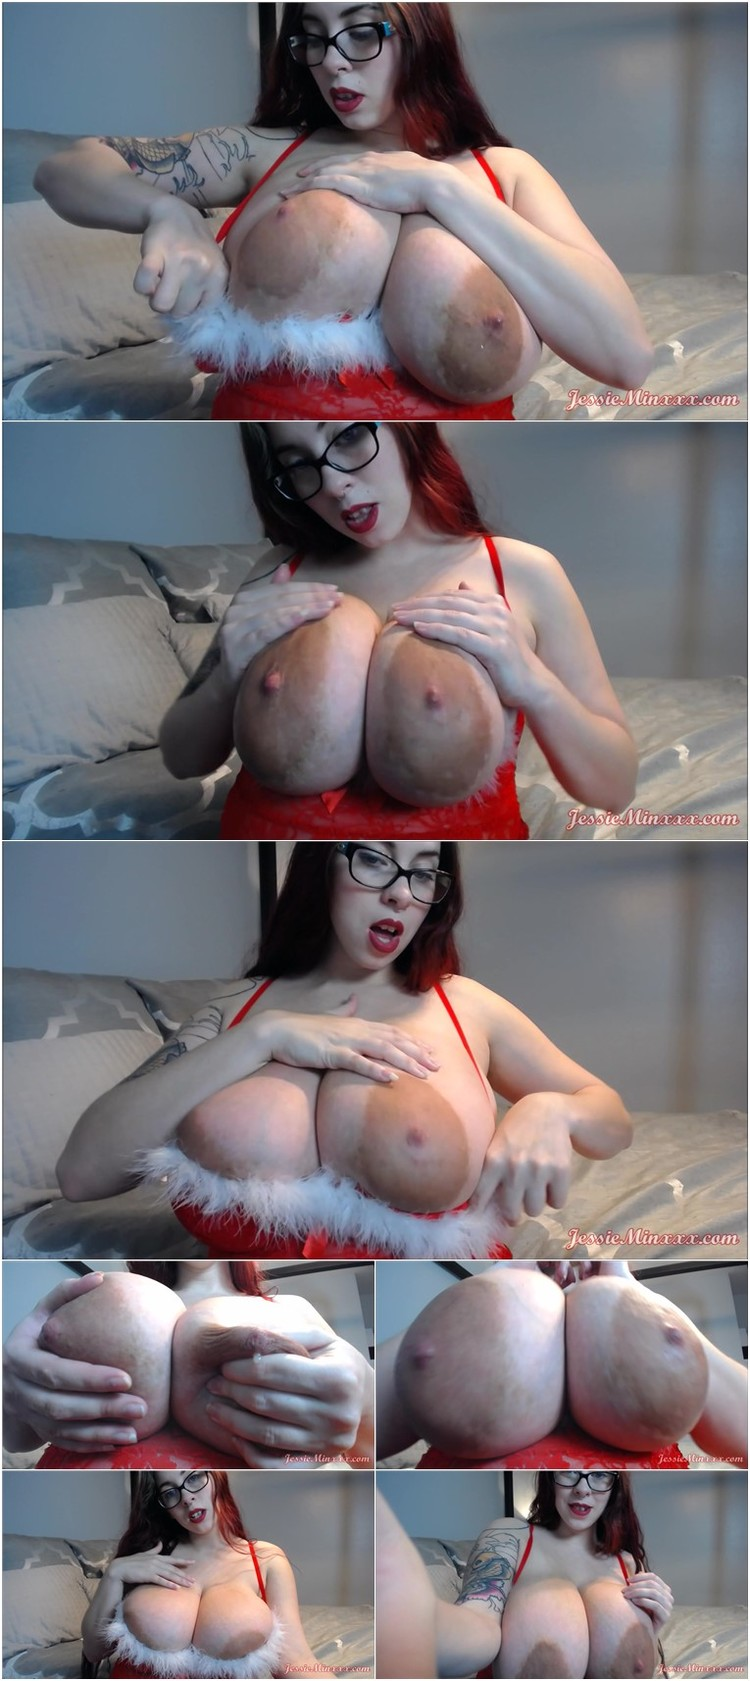 Camgirl With Huge Tits Plays For You